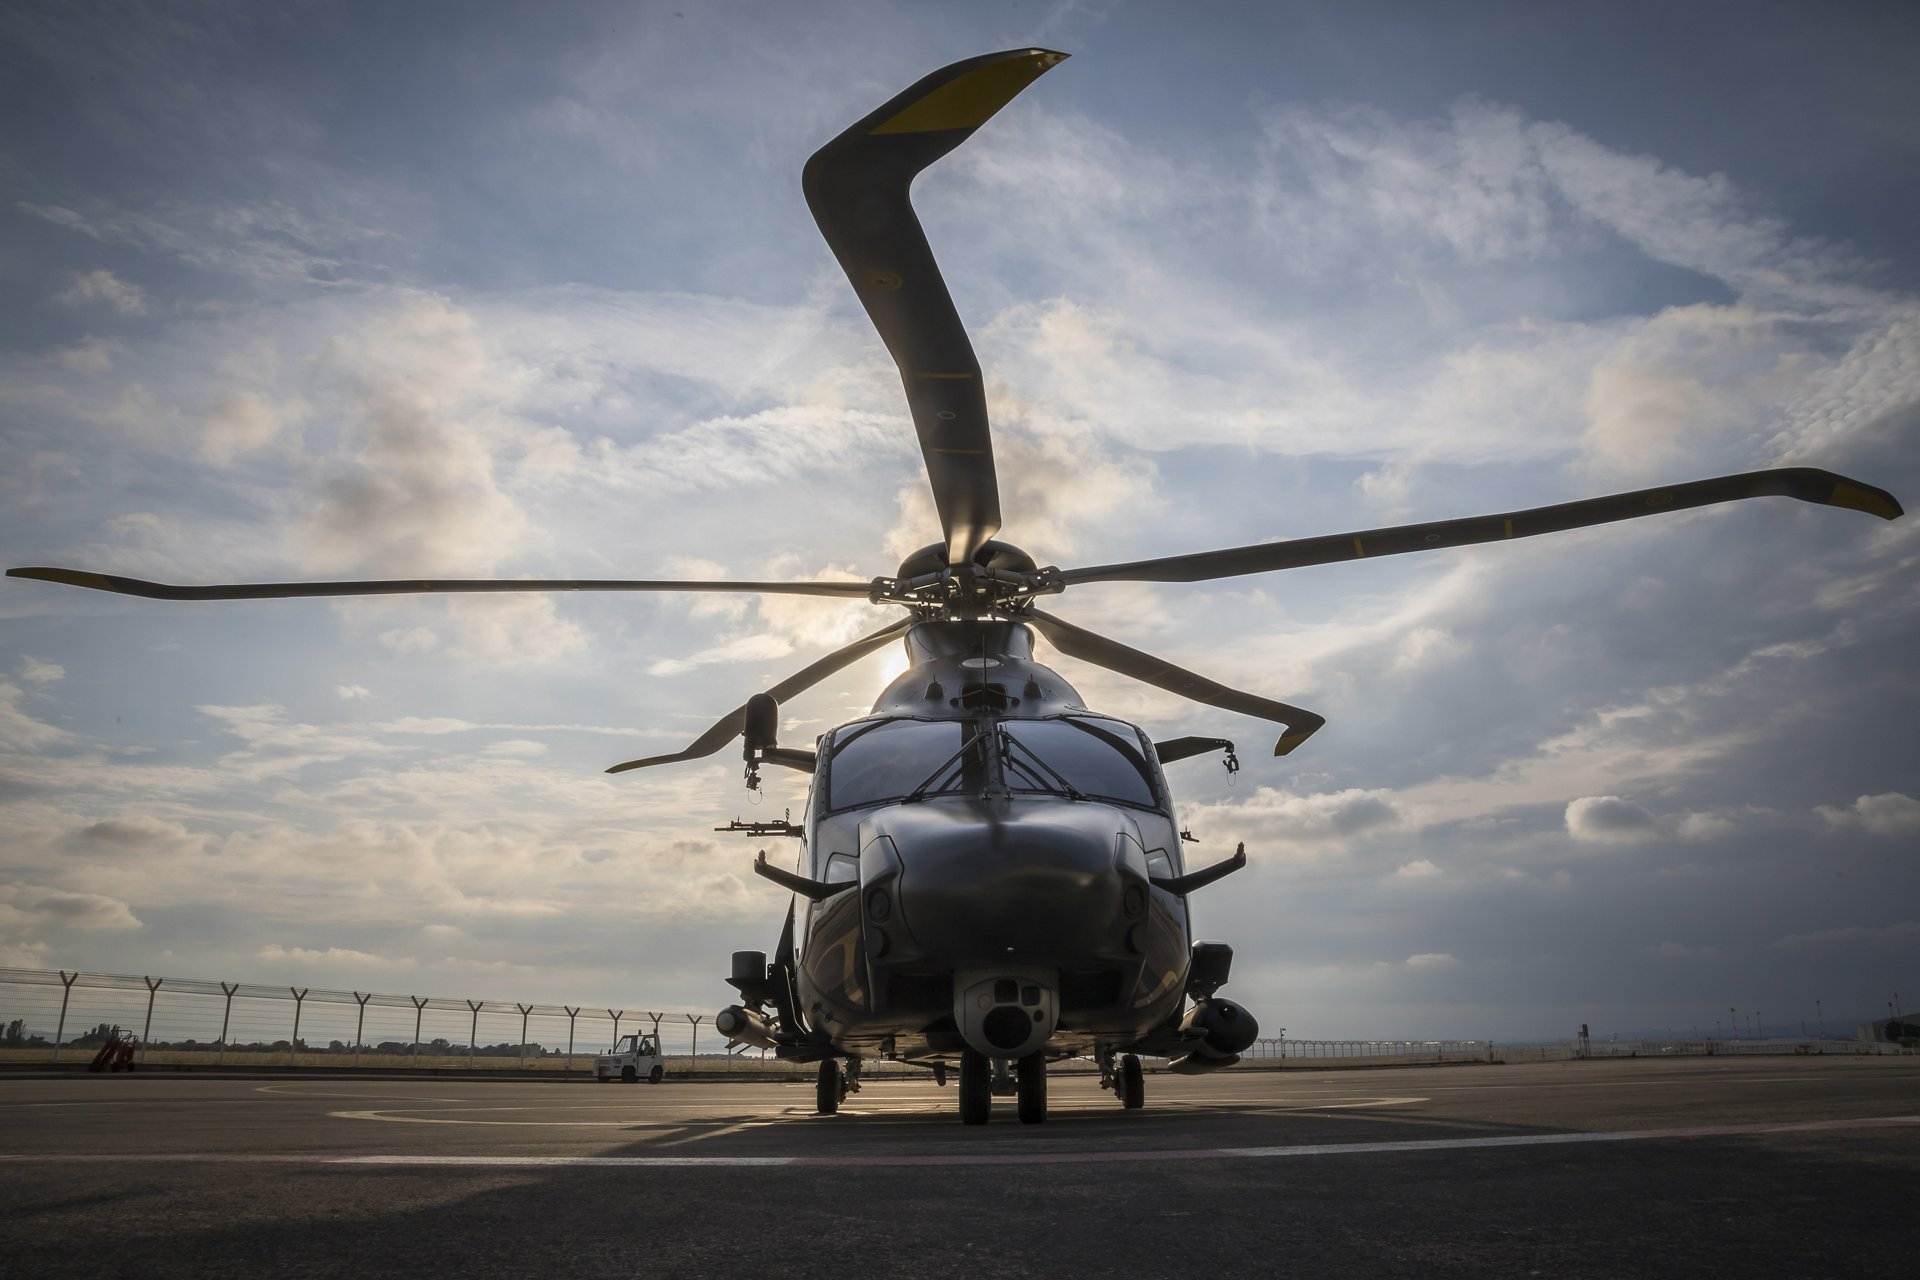 The H160M for the French Armed Forces